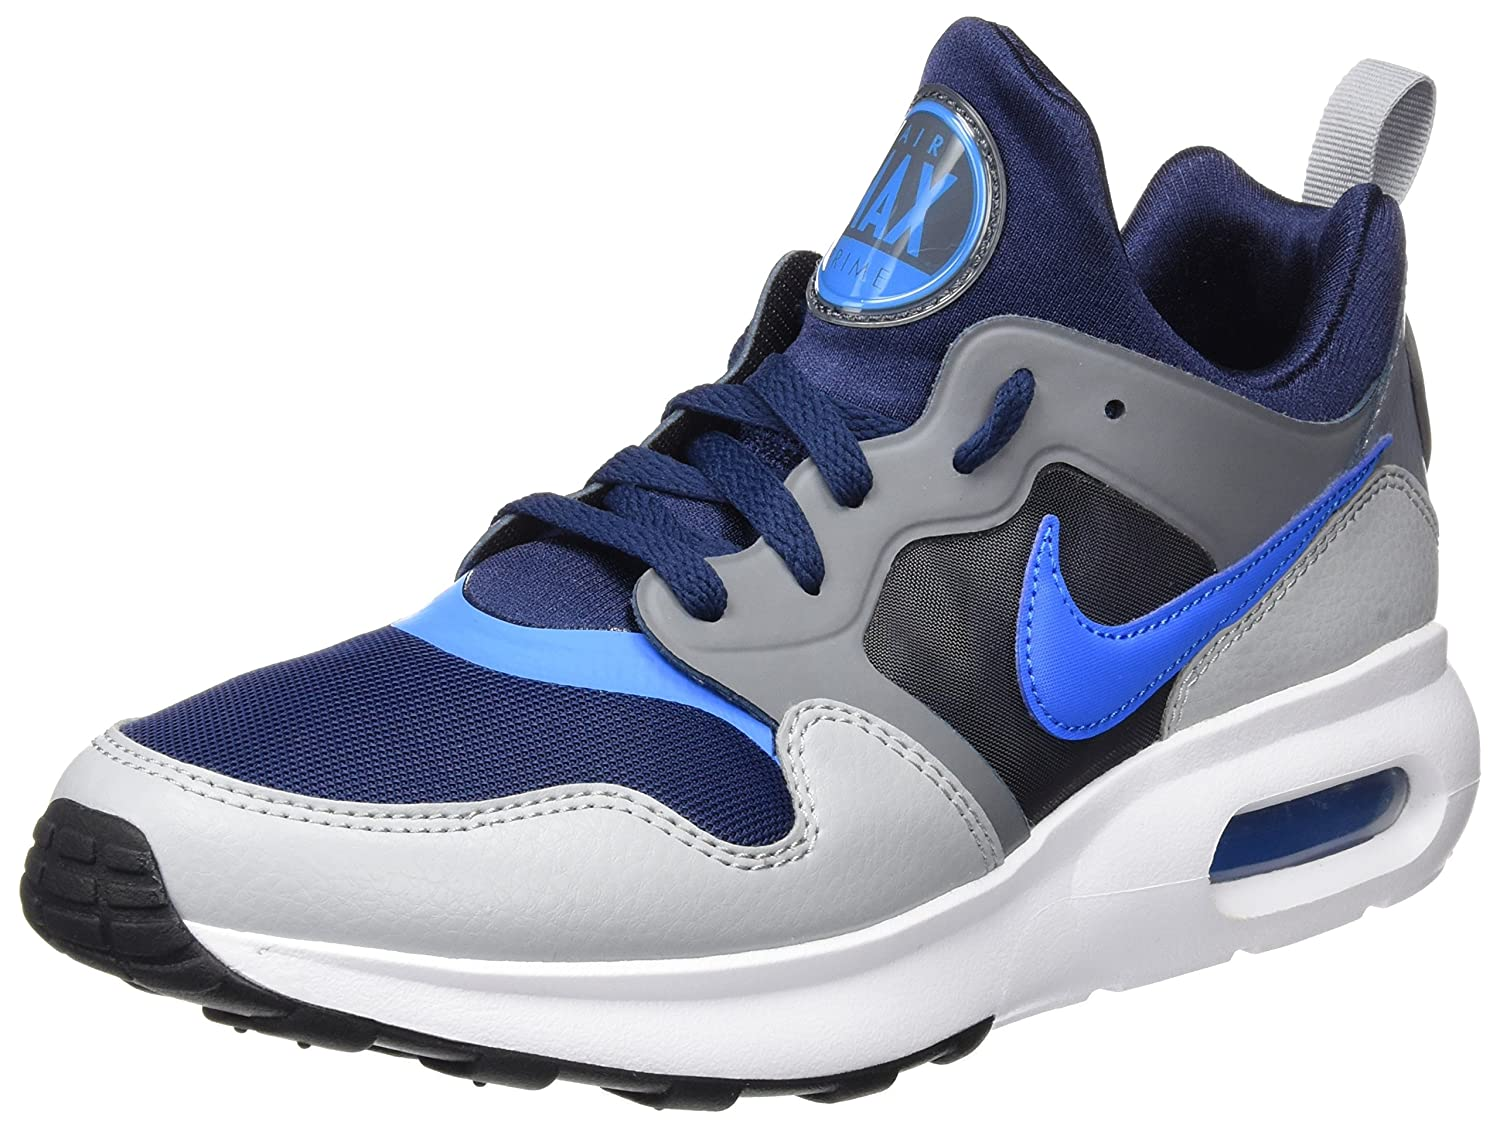 Nike Herren Air Max 90 OG Gymnastikschuhe  455 EU|Mehrfarbig (Midnight Navy/Photo Blue/Cool Grey)